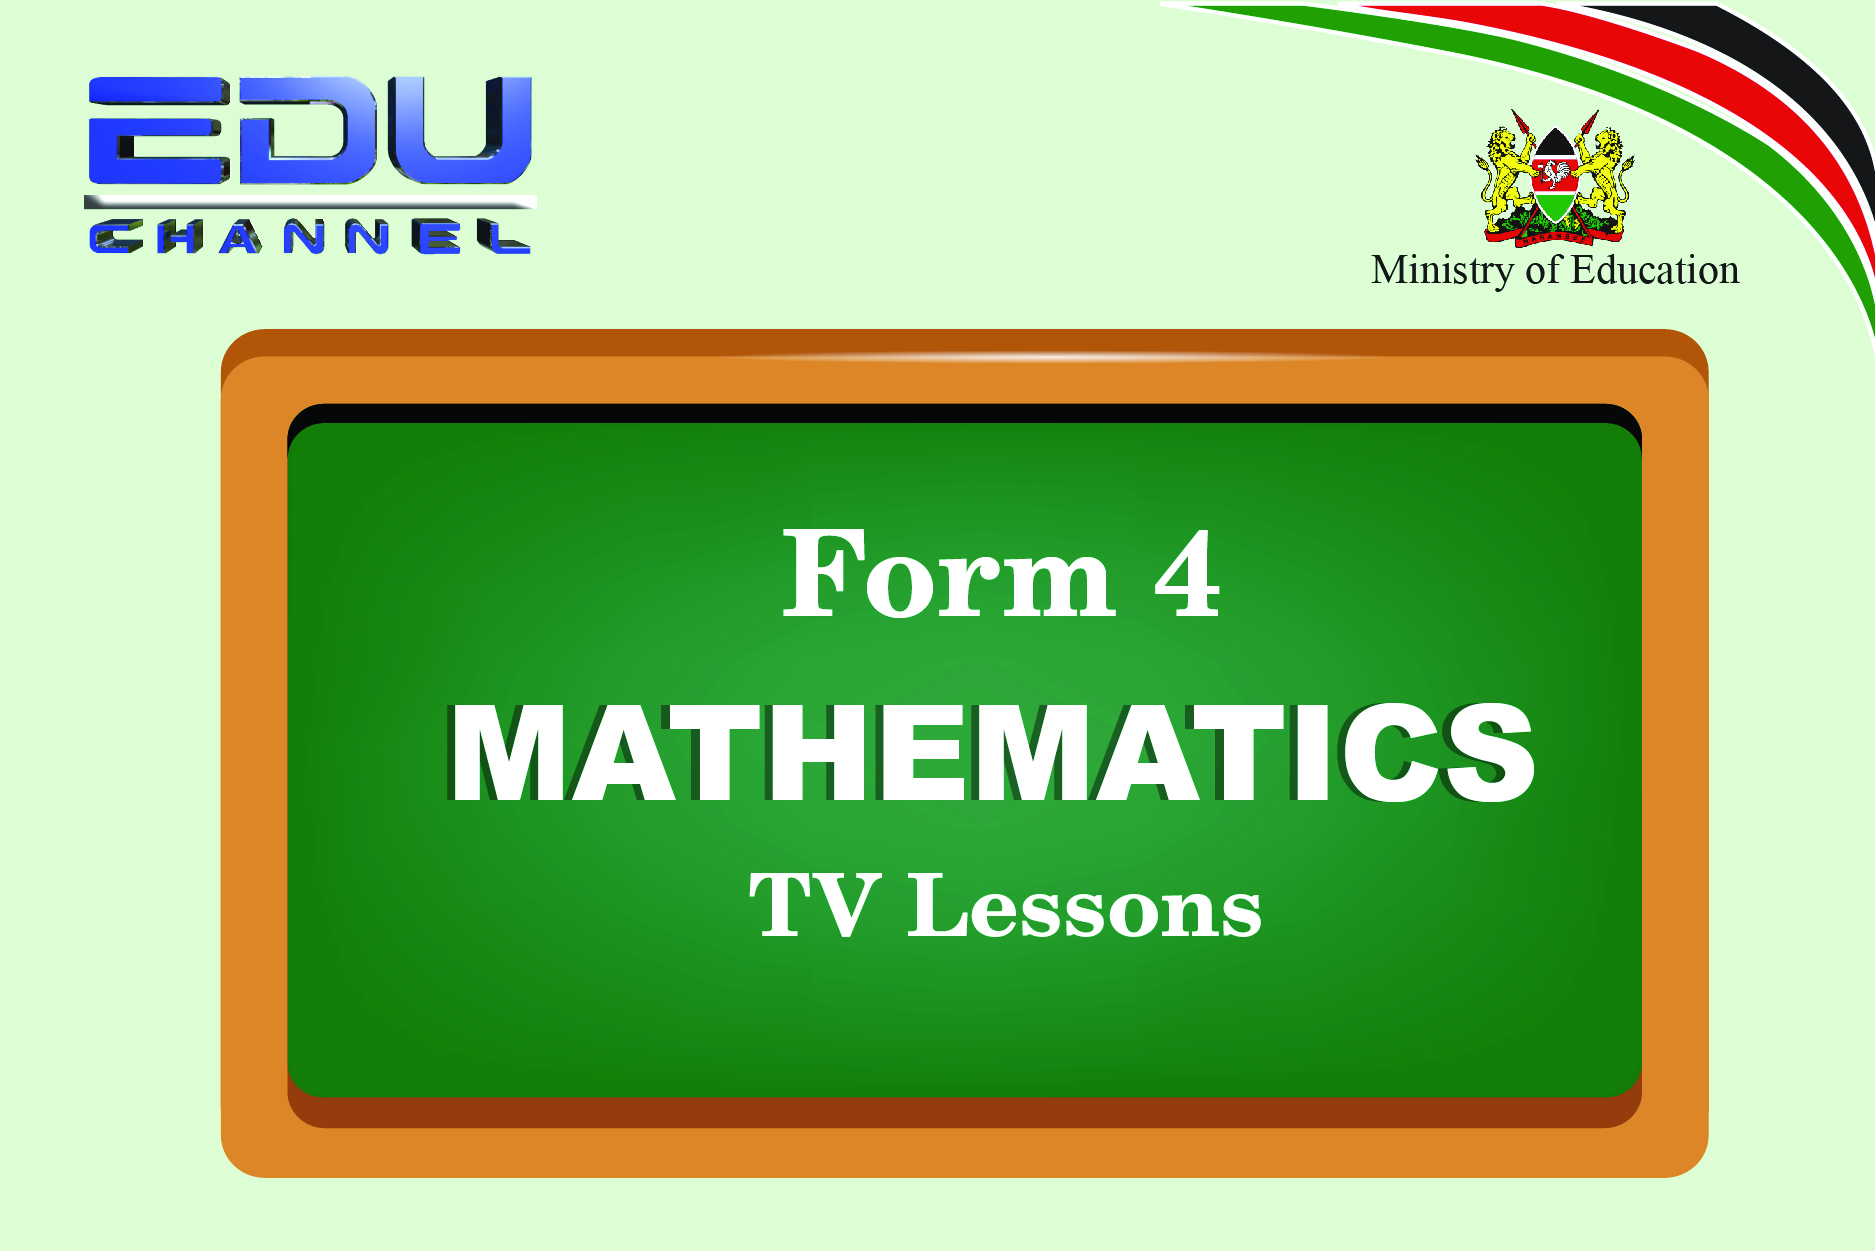 Form 4 Mathematics Lesson 7:Longitude and Latitude - Location of place on earth Surface